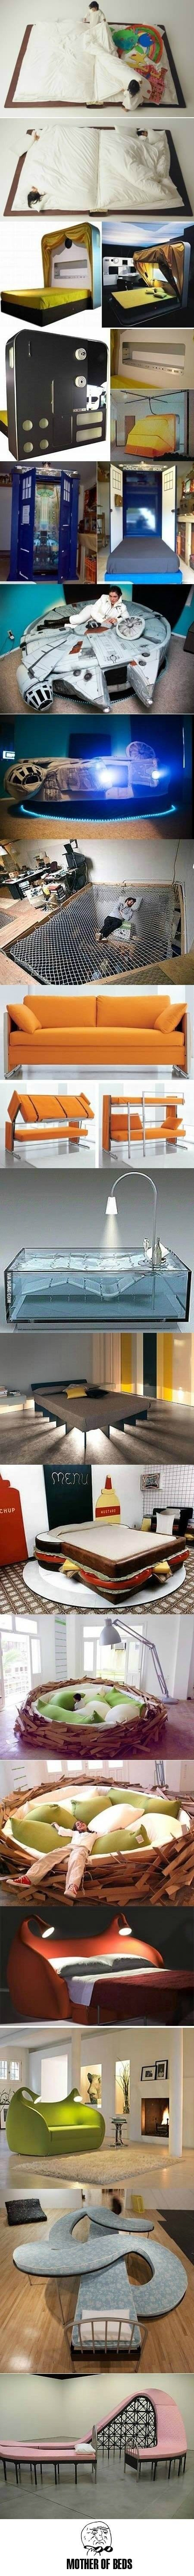 best awesome ideas images on pinterest home ideas my house and